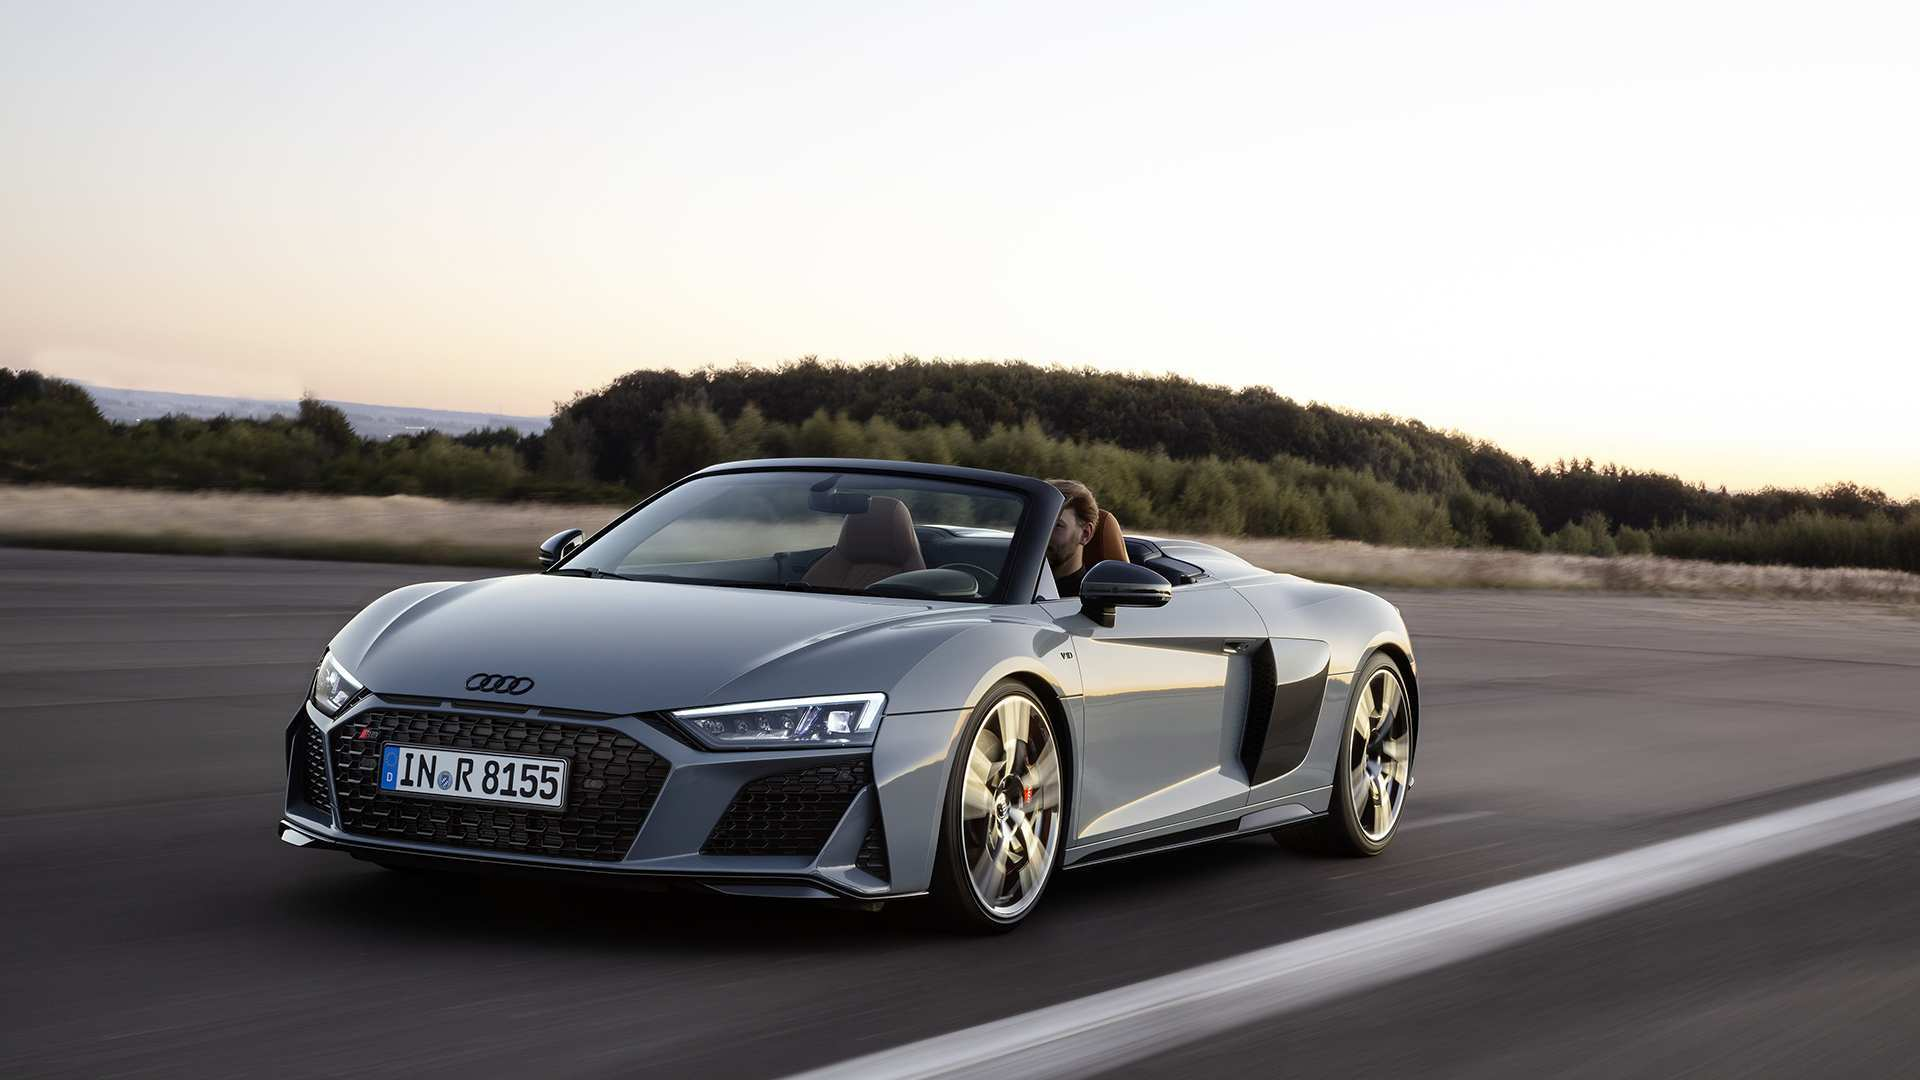 70 New 2020 Audi R8 V10 Spyder Redesign and Concept